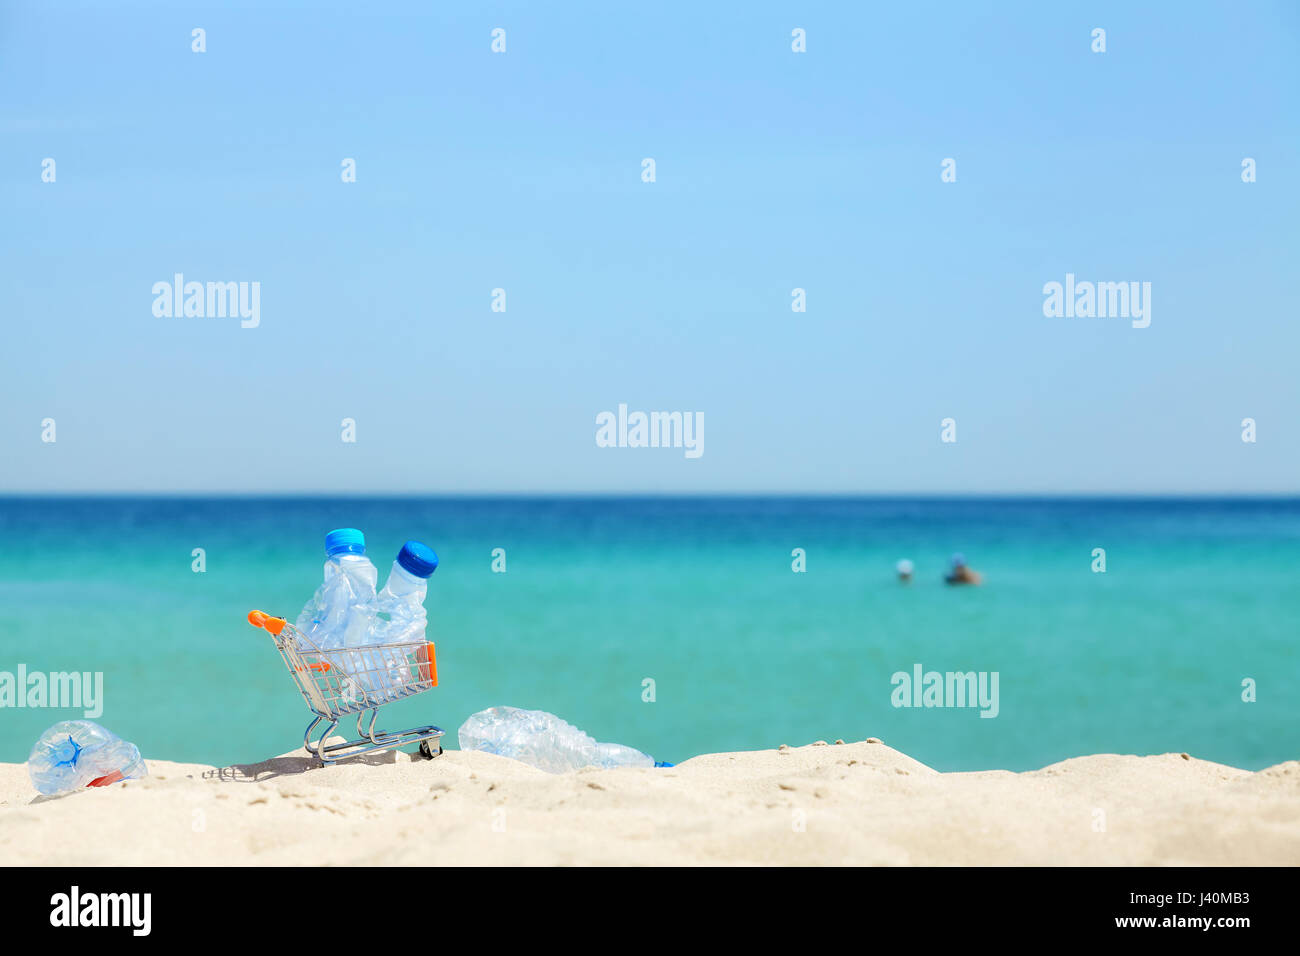 Miniature shopping cart with empty plastic bottles left by tourist on a tropical beach, environmental pollution - Stock Image